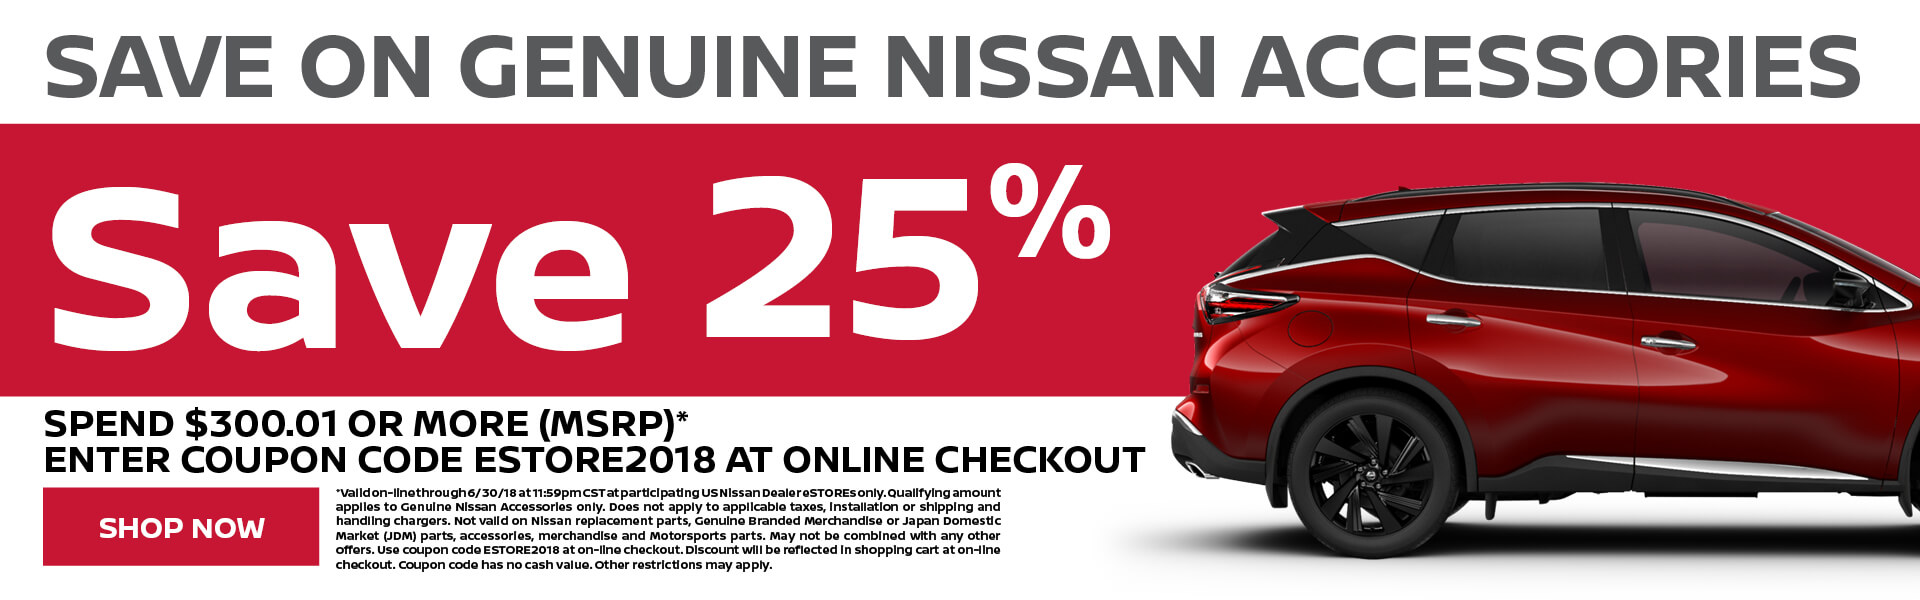 Nissan Accessories Save 25%